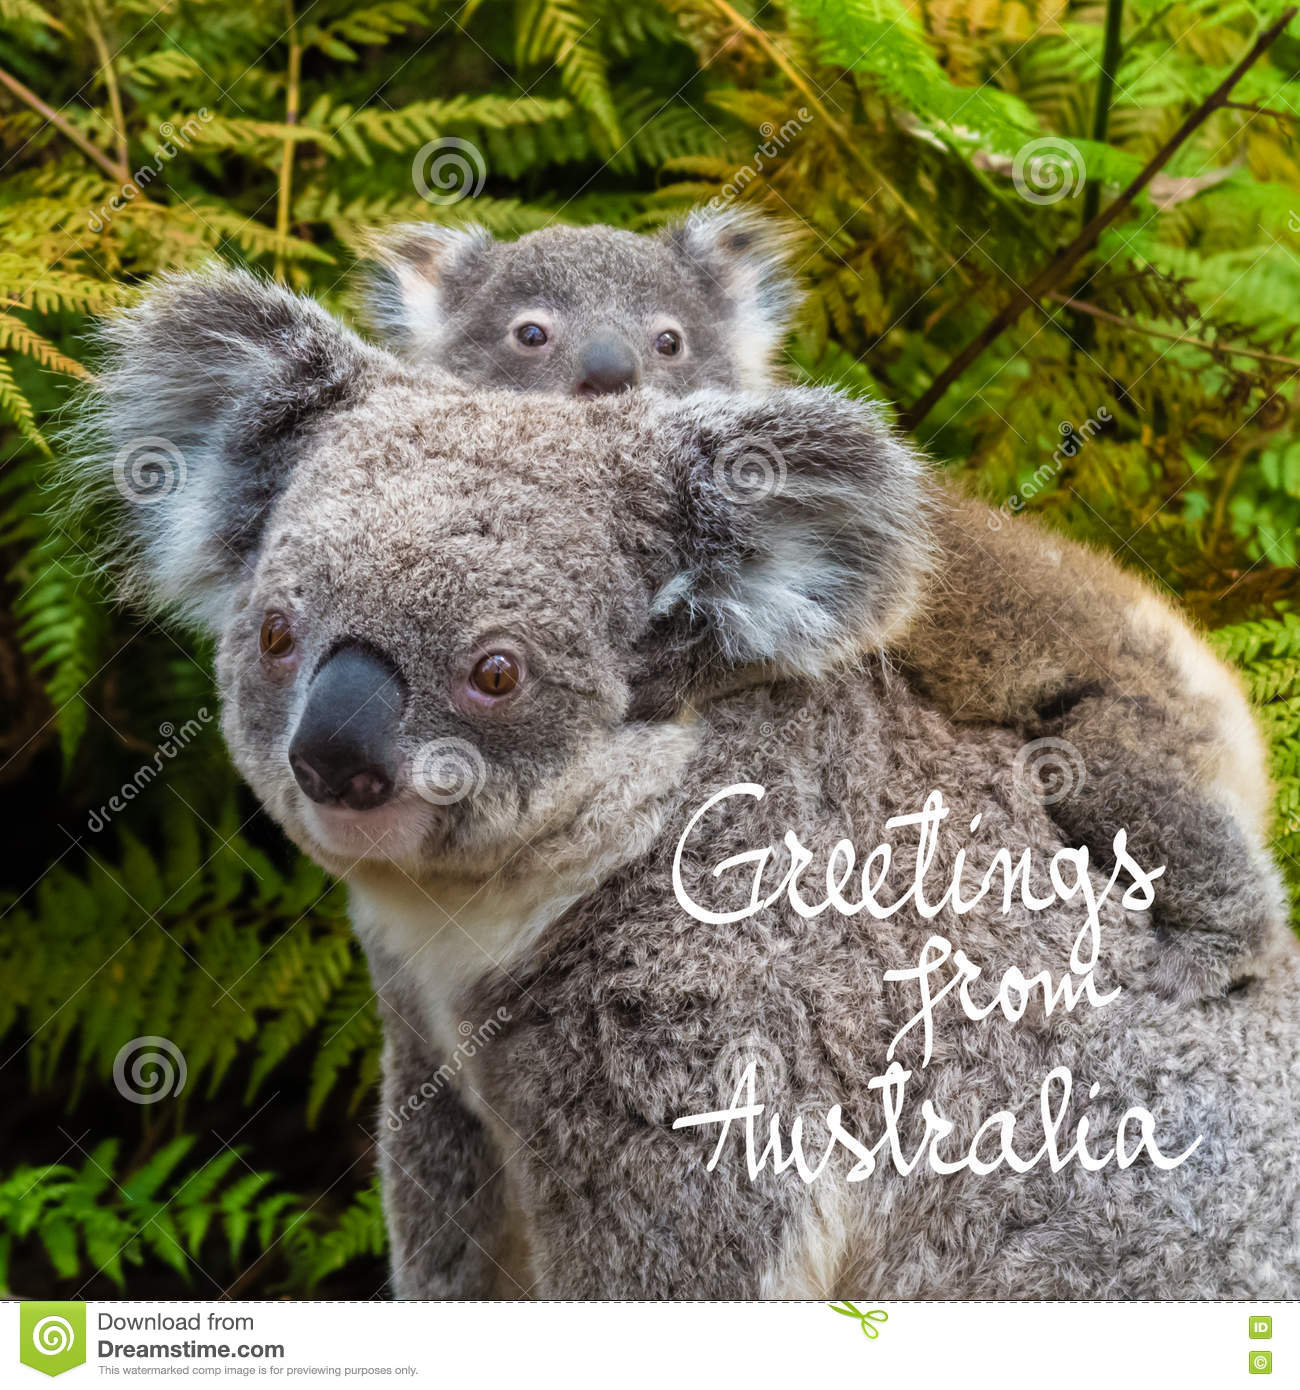 Australian koala bear native animal with baby and greetings from download australian koala bear native animal with baby and greetings from australia text stock illustration m4hsunfo